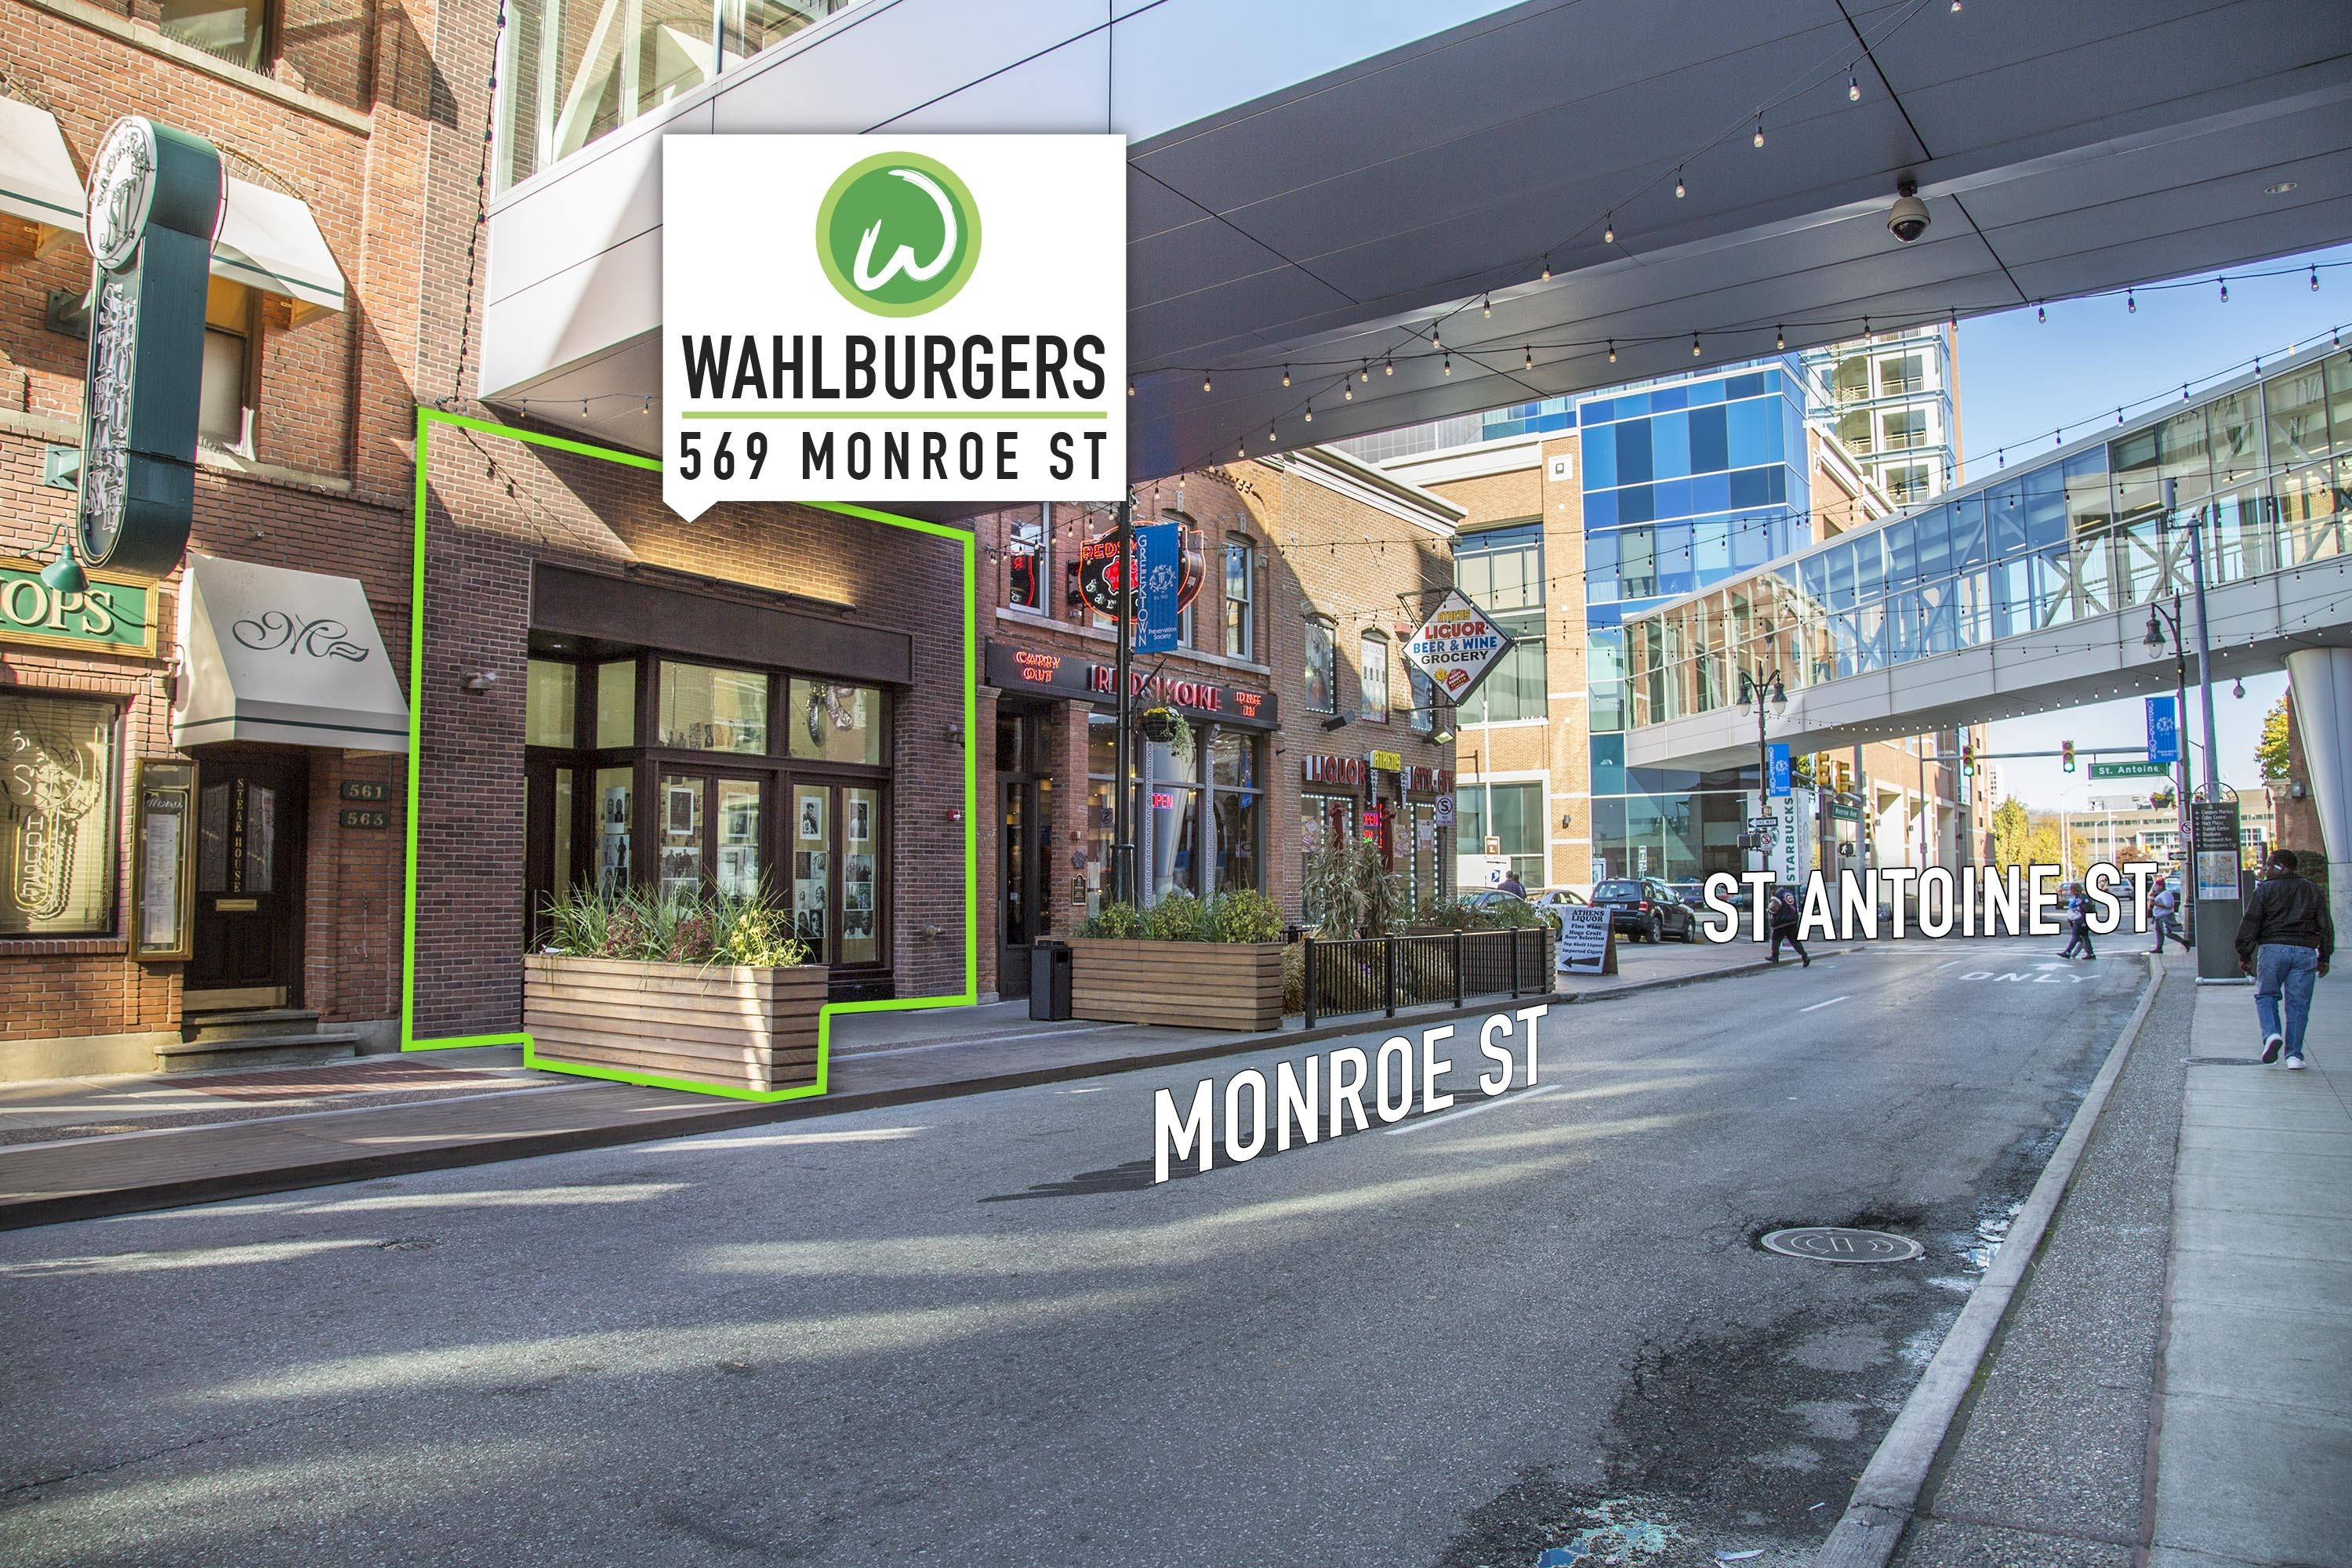 Mark Wahlberg visits Detroit, announces opening date for Wahlburgers